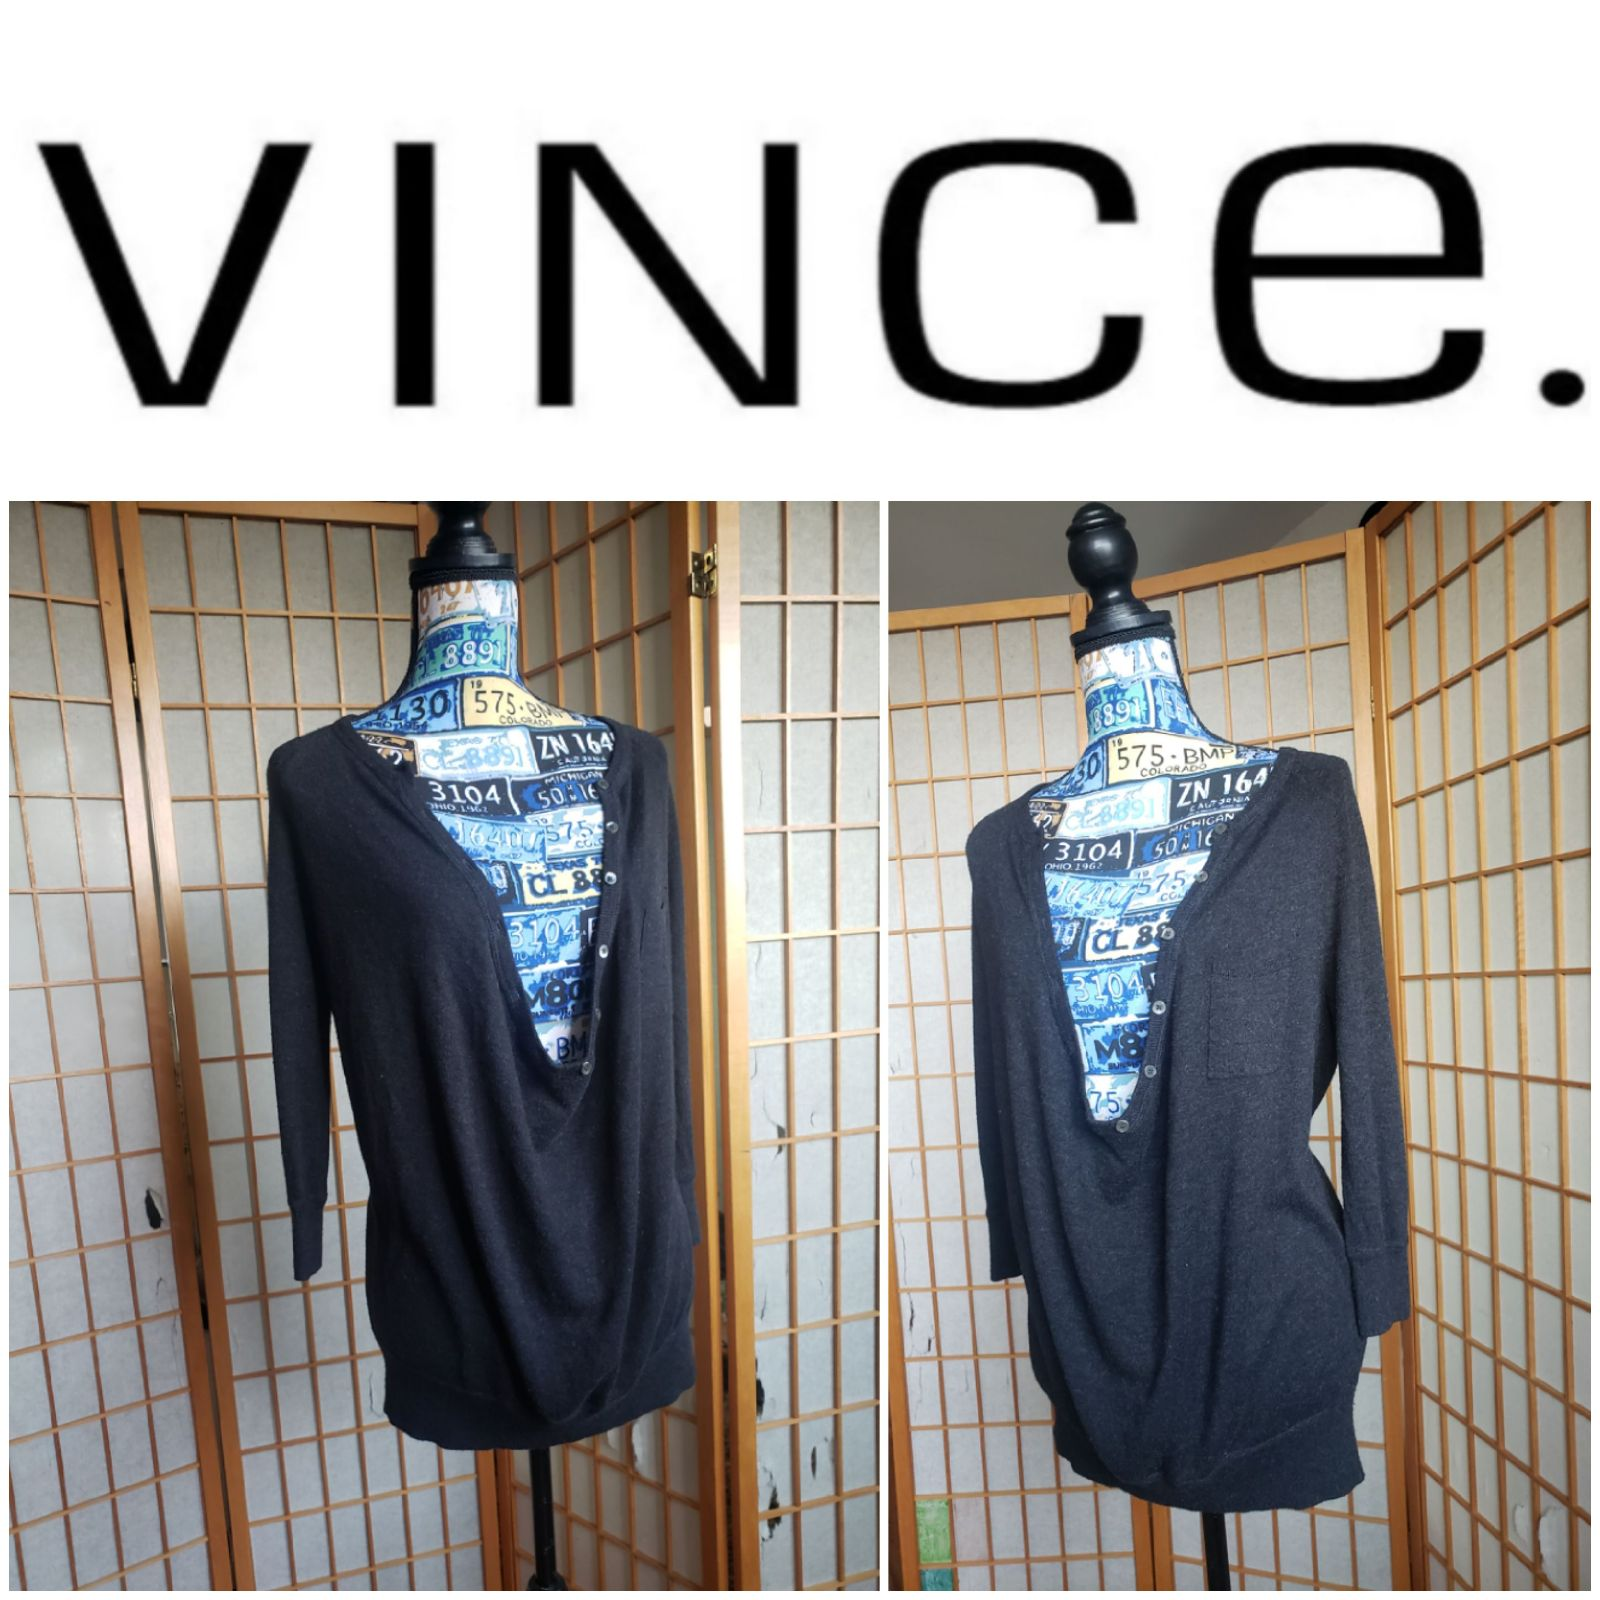 Vince. Cashmere Sweater size small